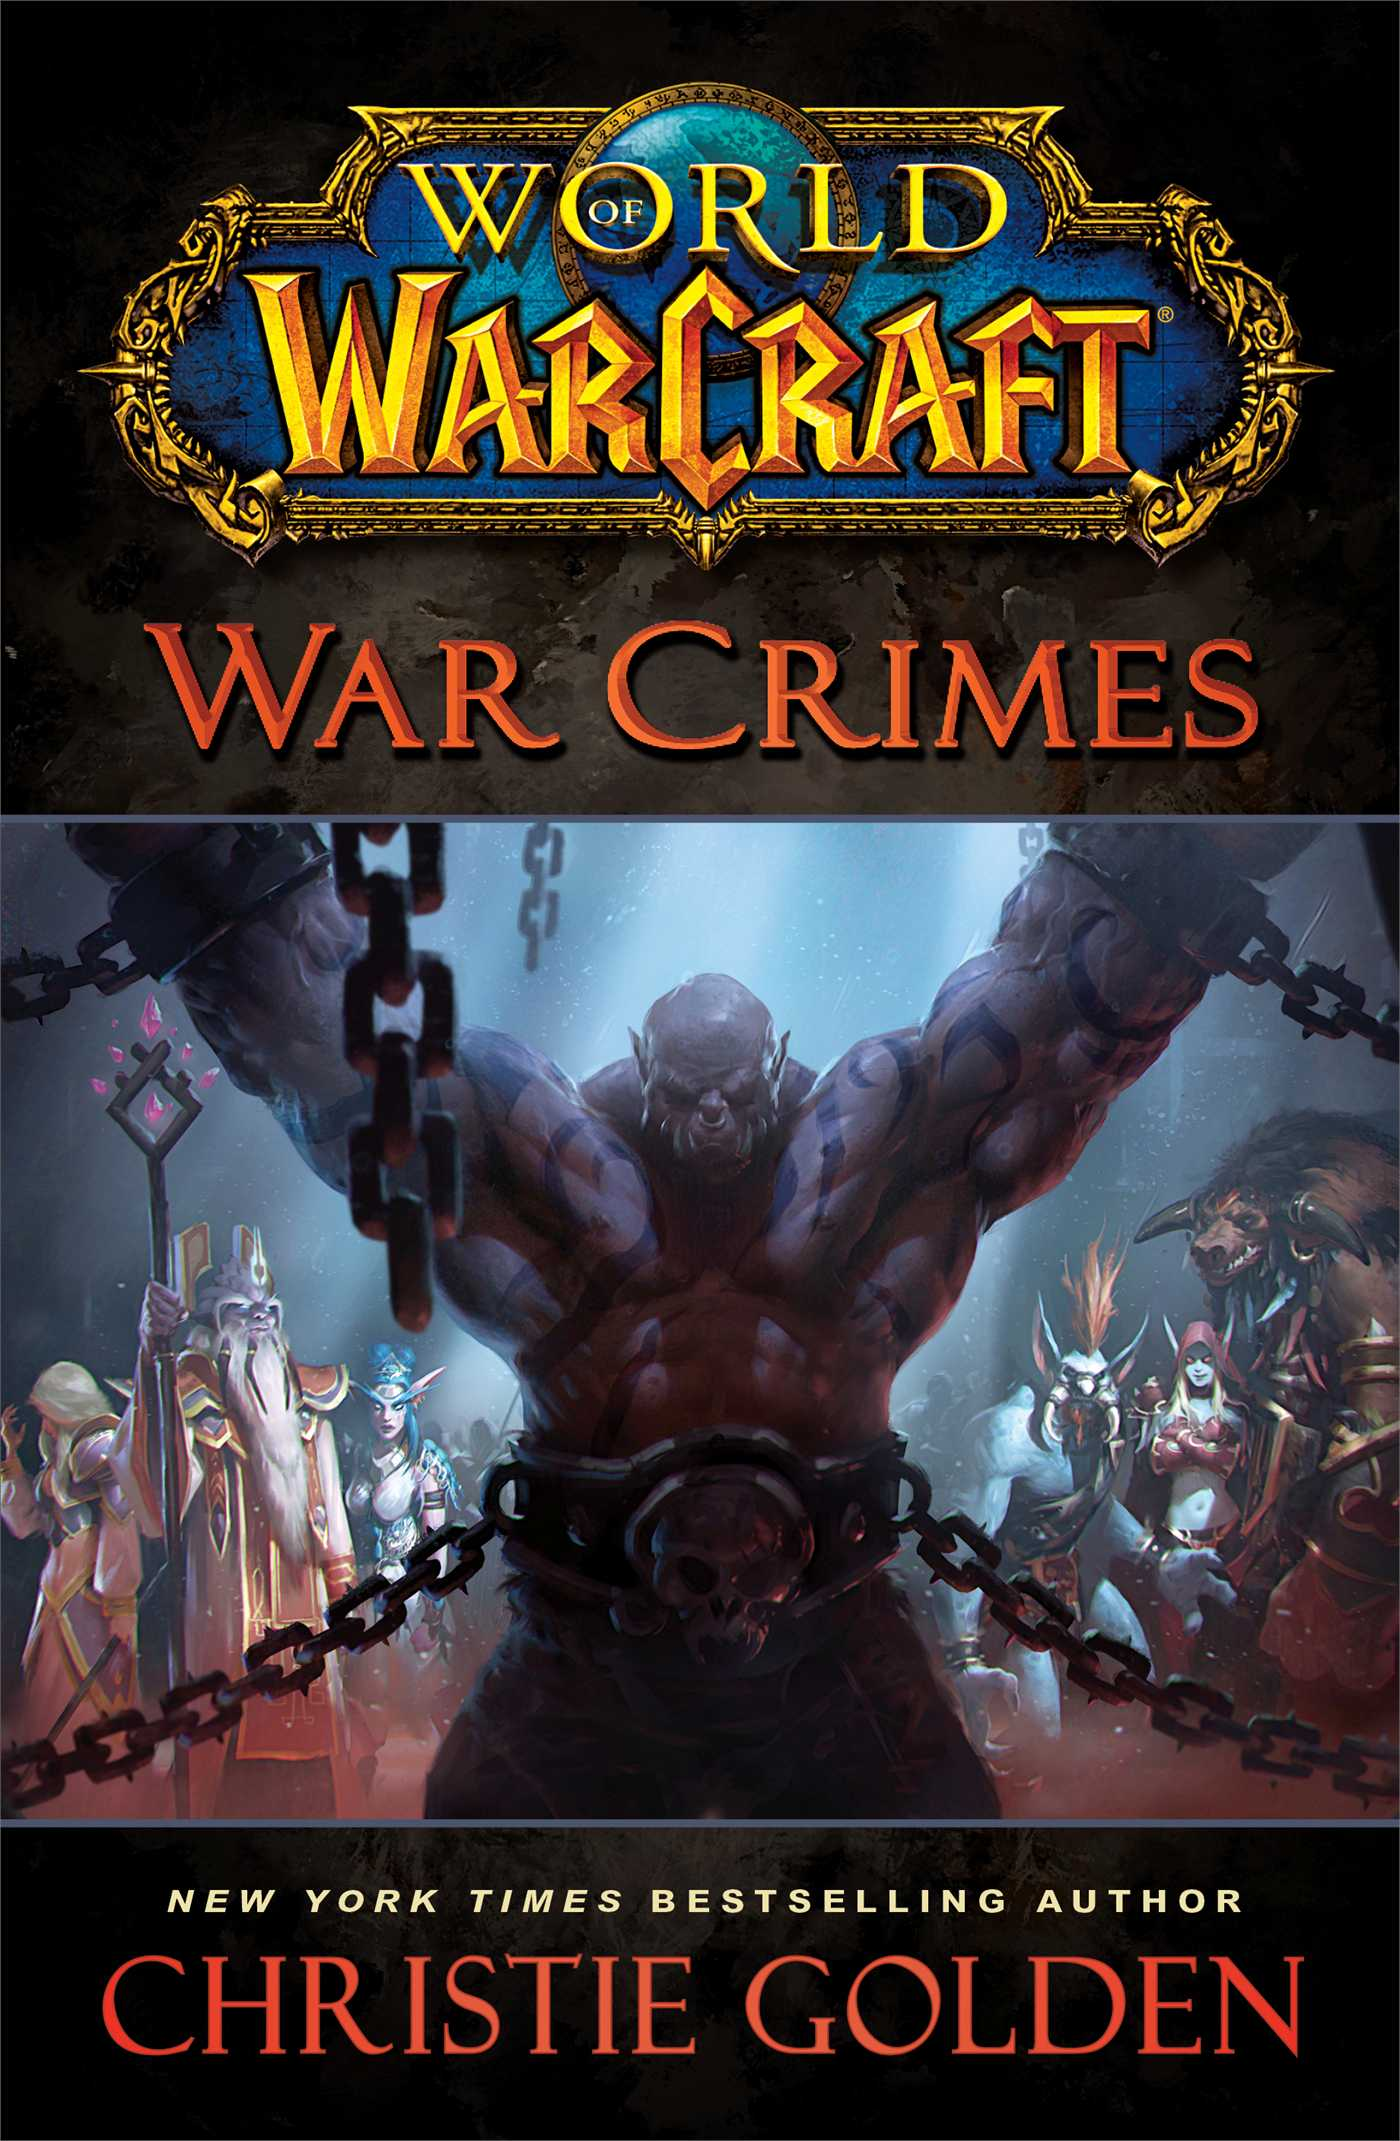 World-of-warcraft-war-crimes-9781451684483_hr